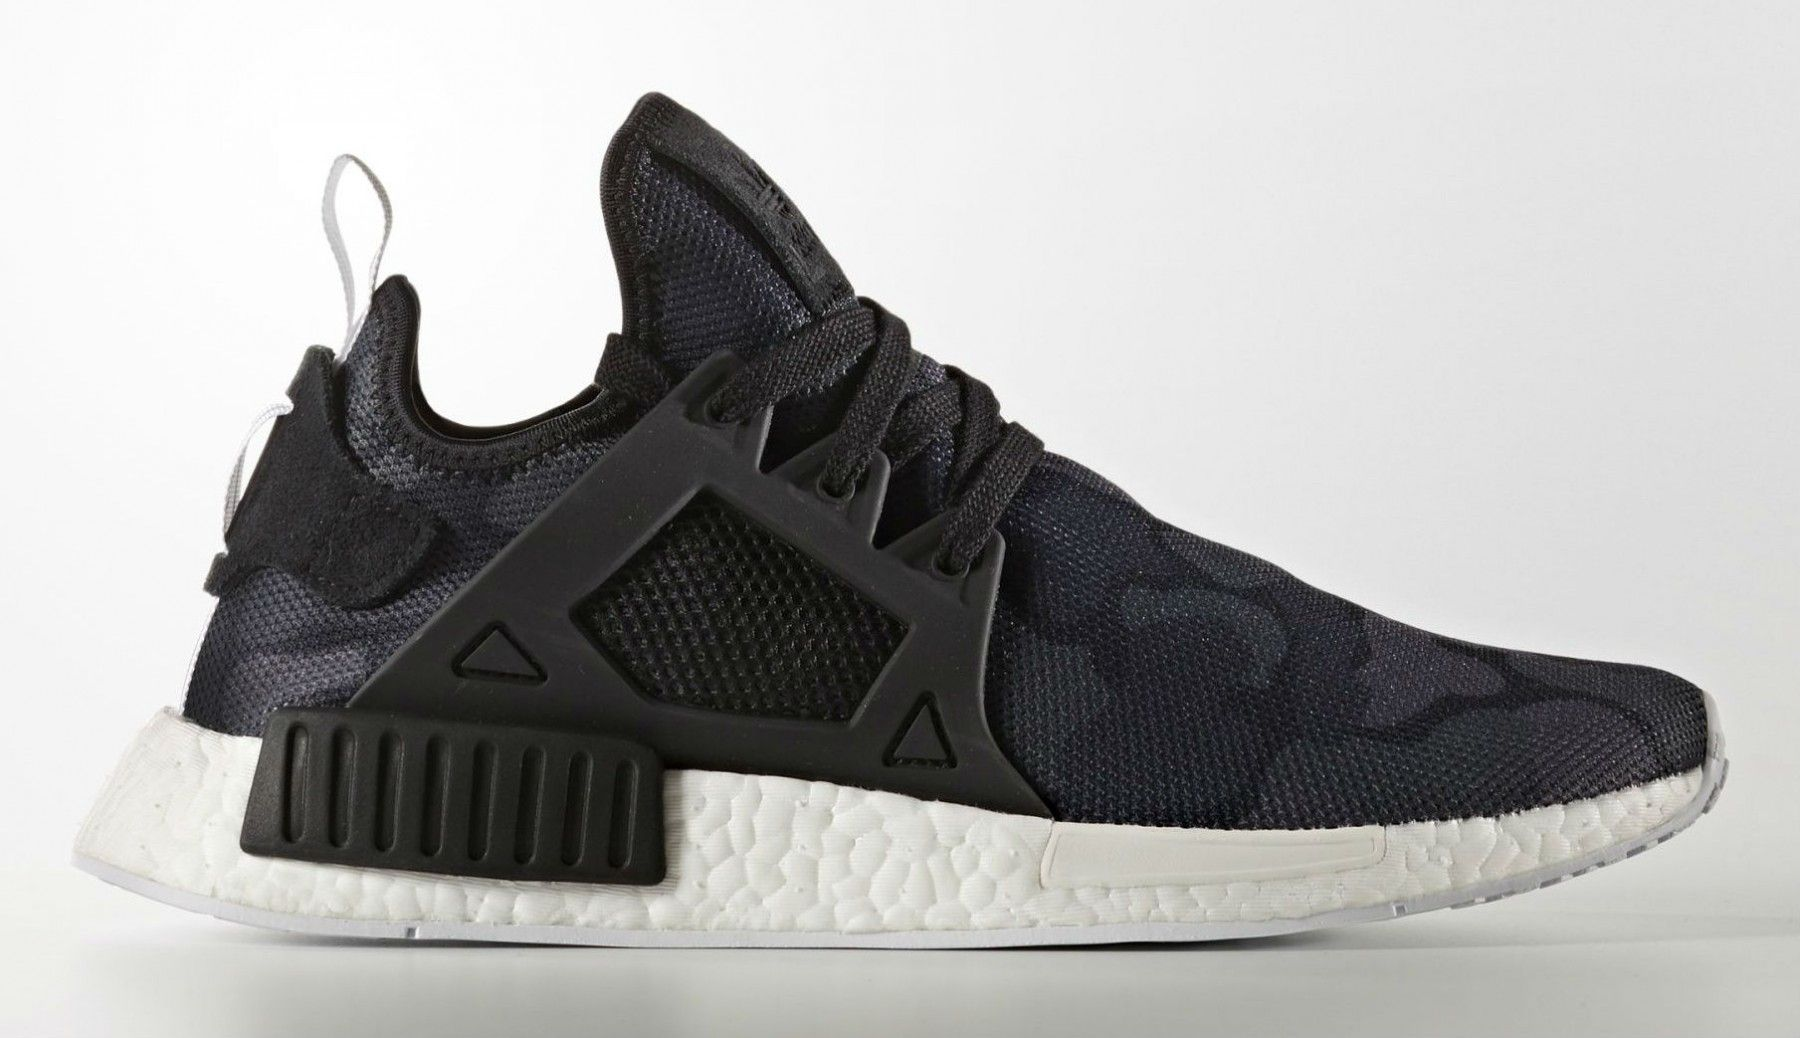 5a6a4ff1572f A First Detailed Look at the adidas NMD XR1  Camo  Pack